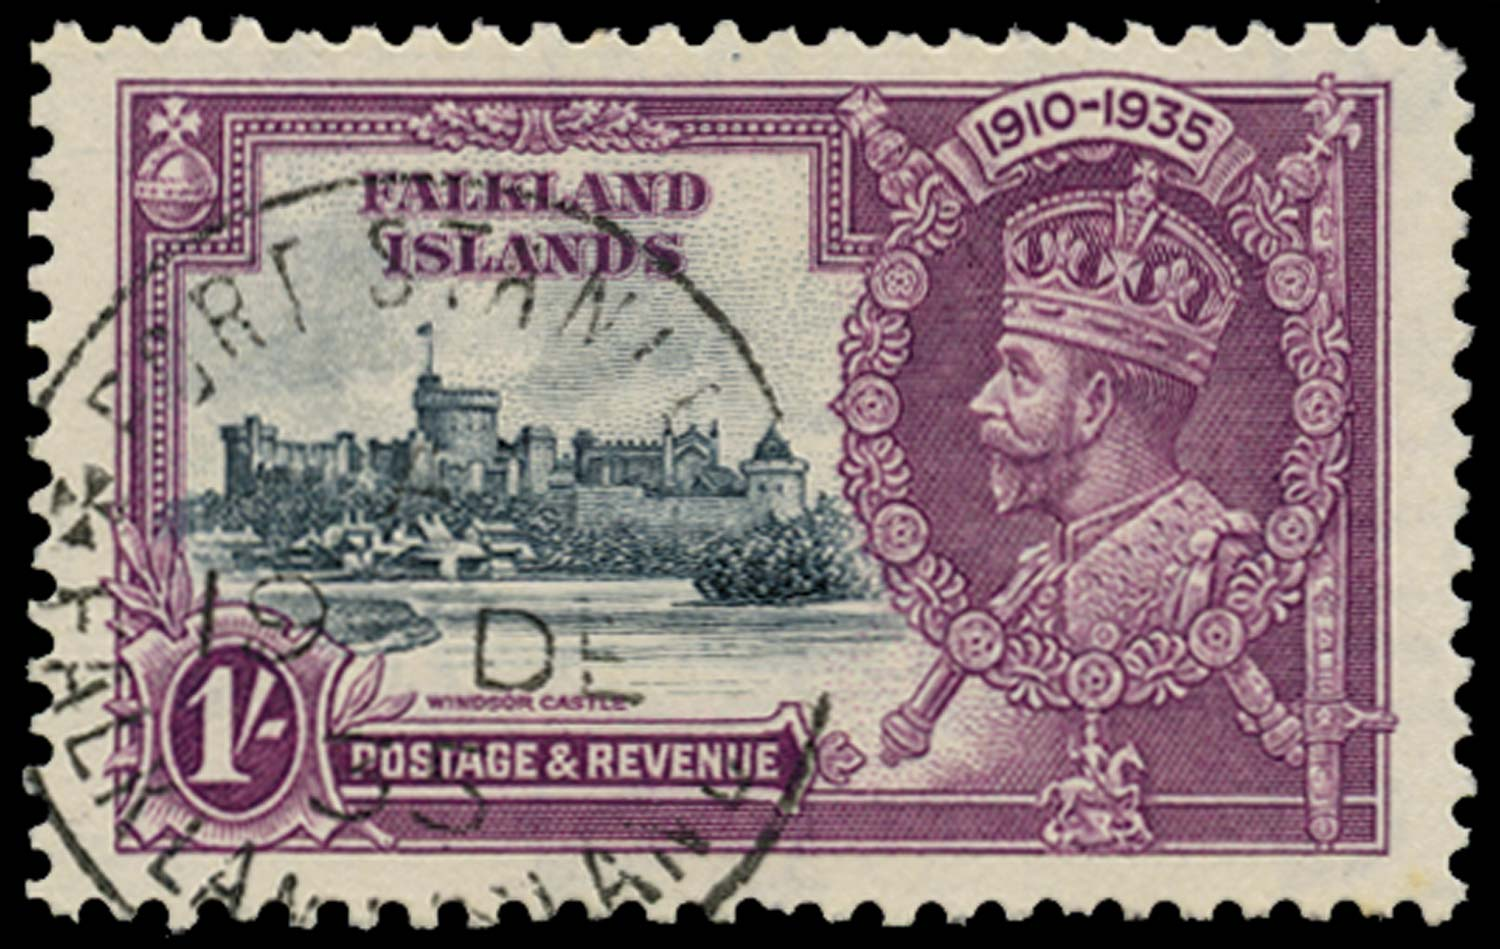 FALKLAND ISLANDS 1935  SG142b Used 1s Short extra flagstaff